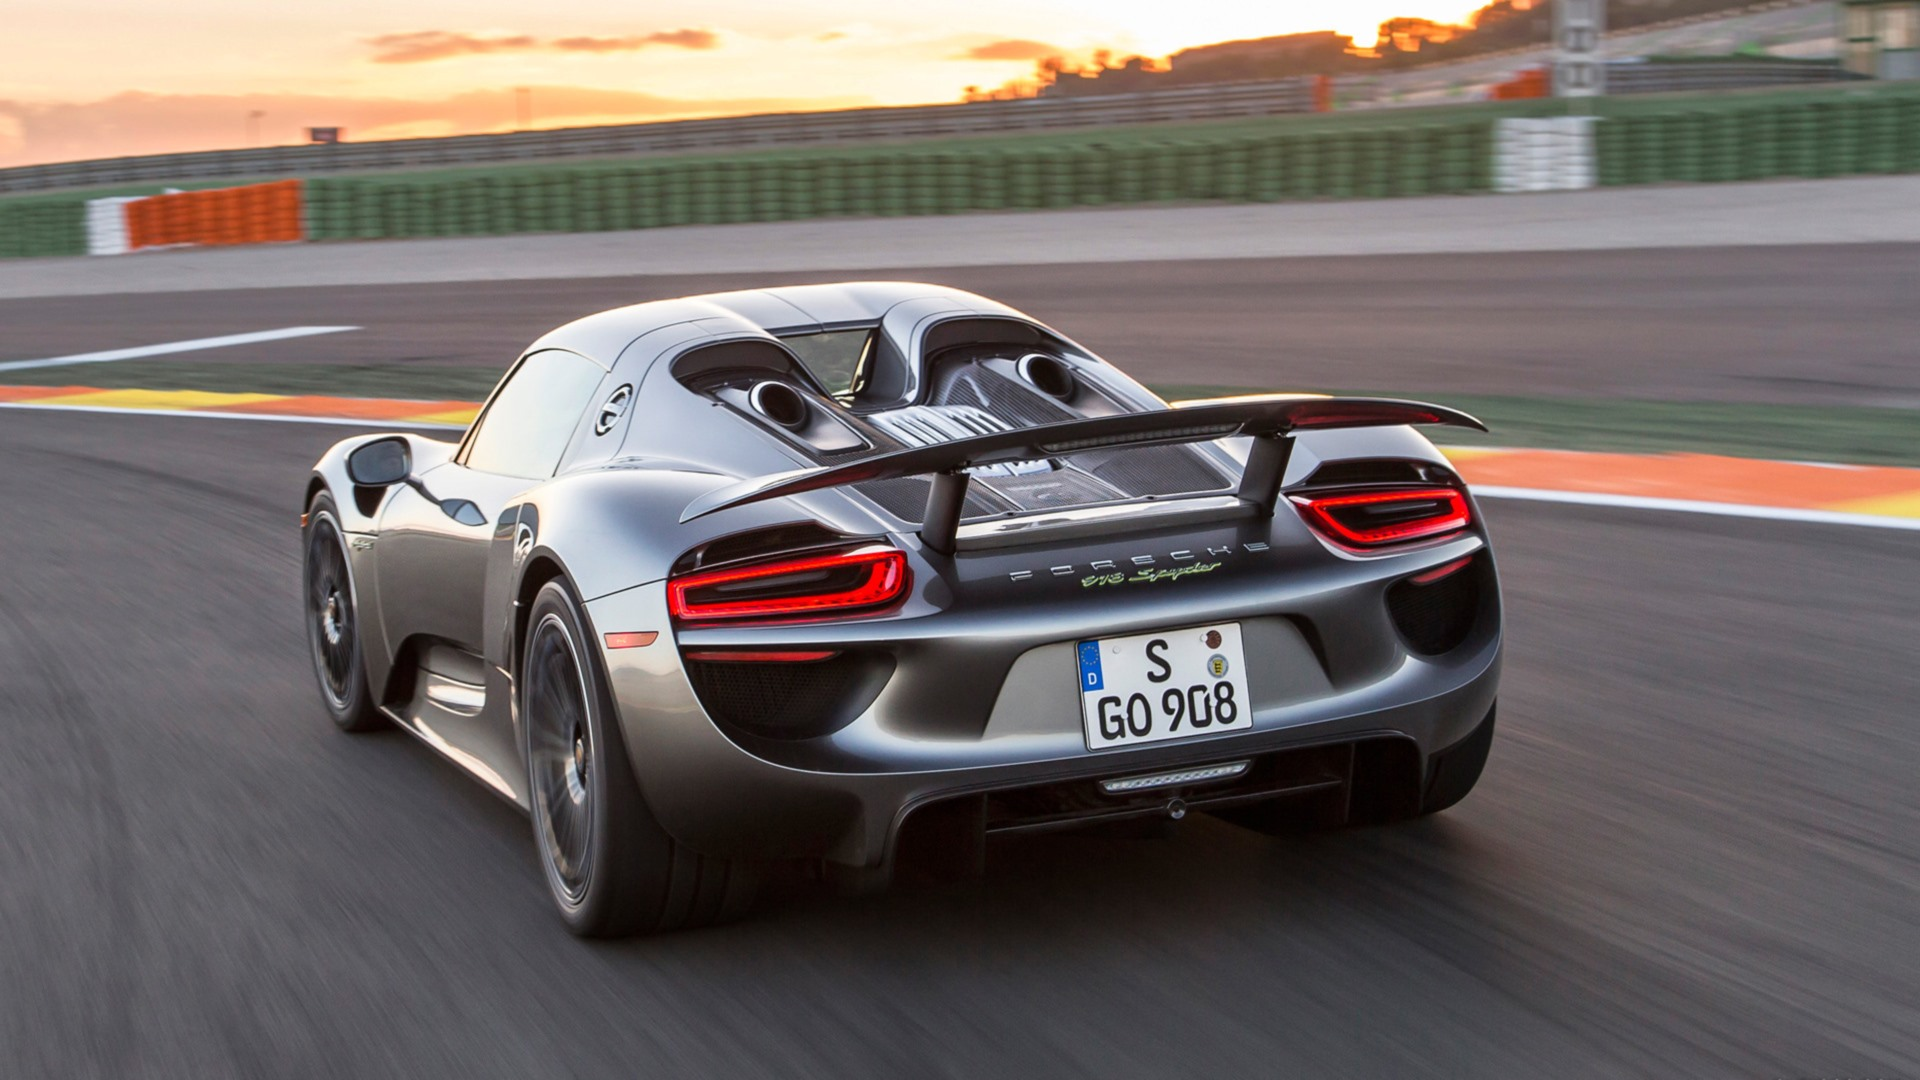 59 porsche 918 spyder hd wallpapers backgrounds wallpaper abyss page 2 - Porsche 918 Spyder Wallpaper